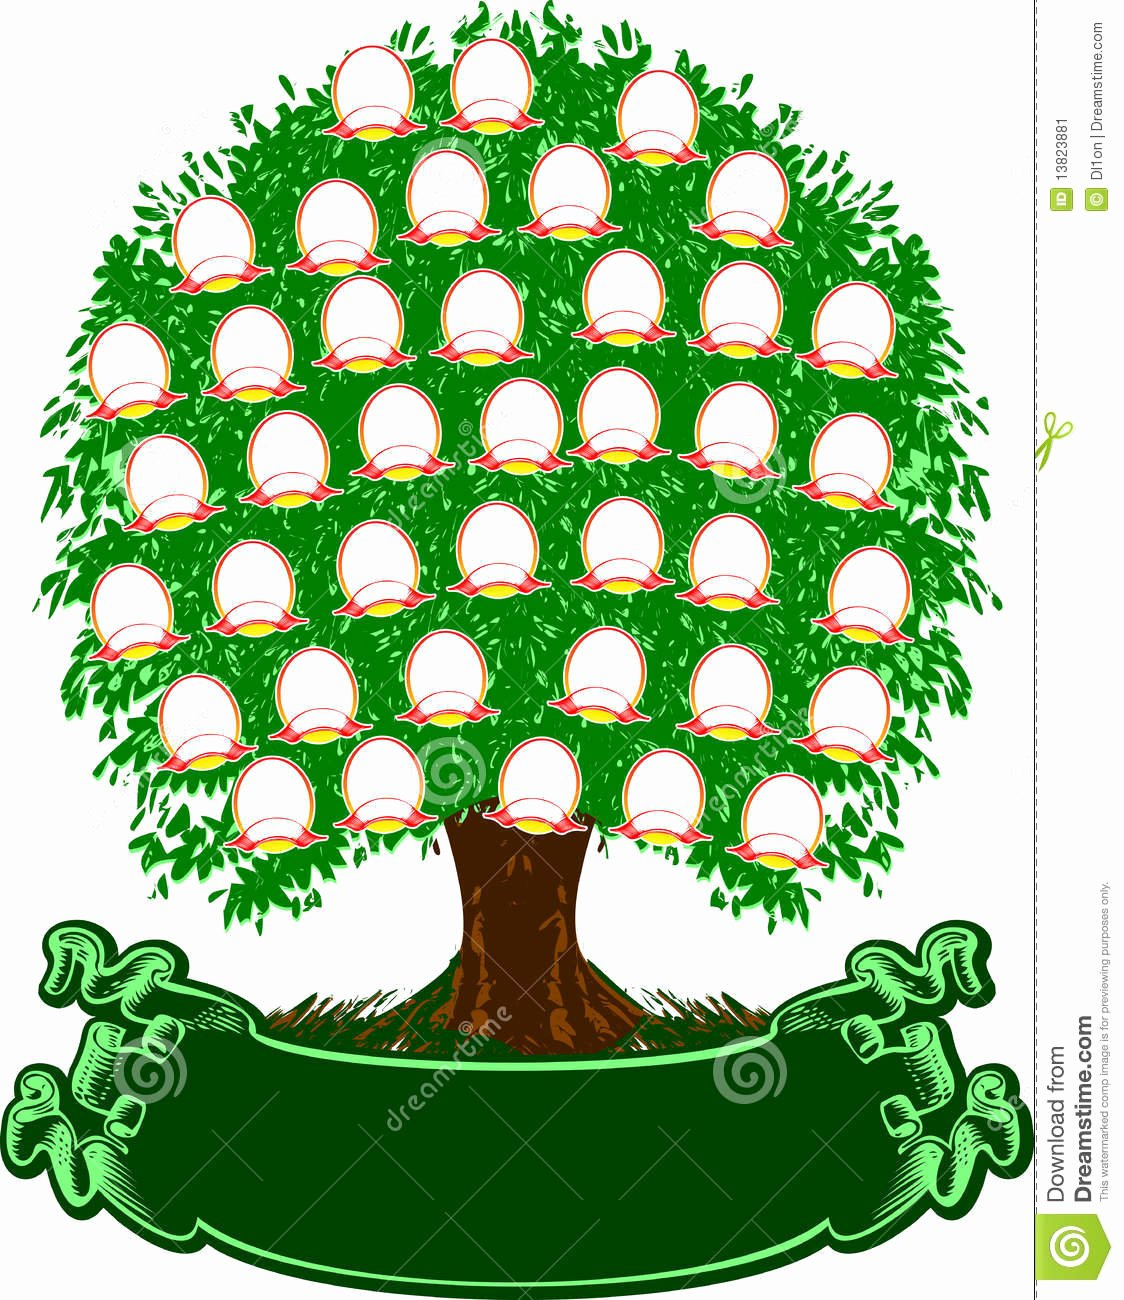 Picture Of A Family Tree Lovely Family Tree Freebies – Gianna the Great